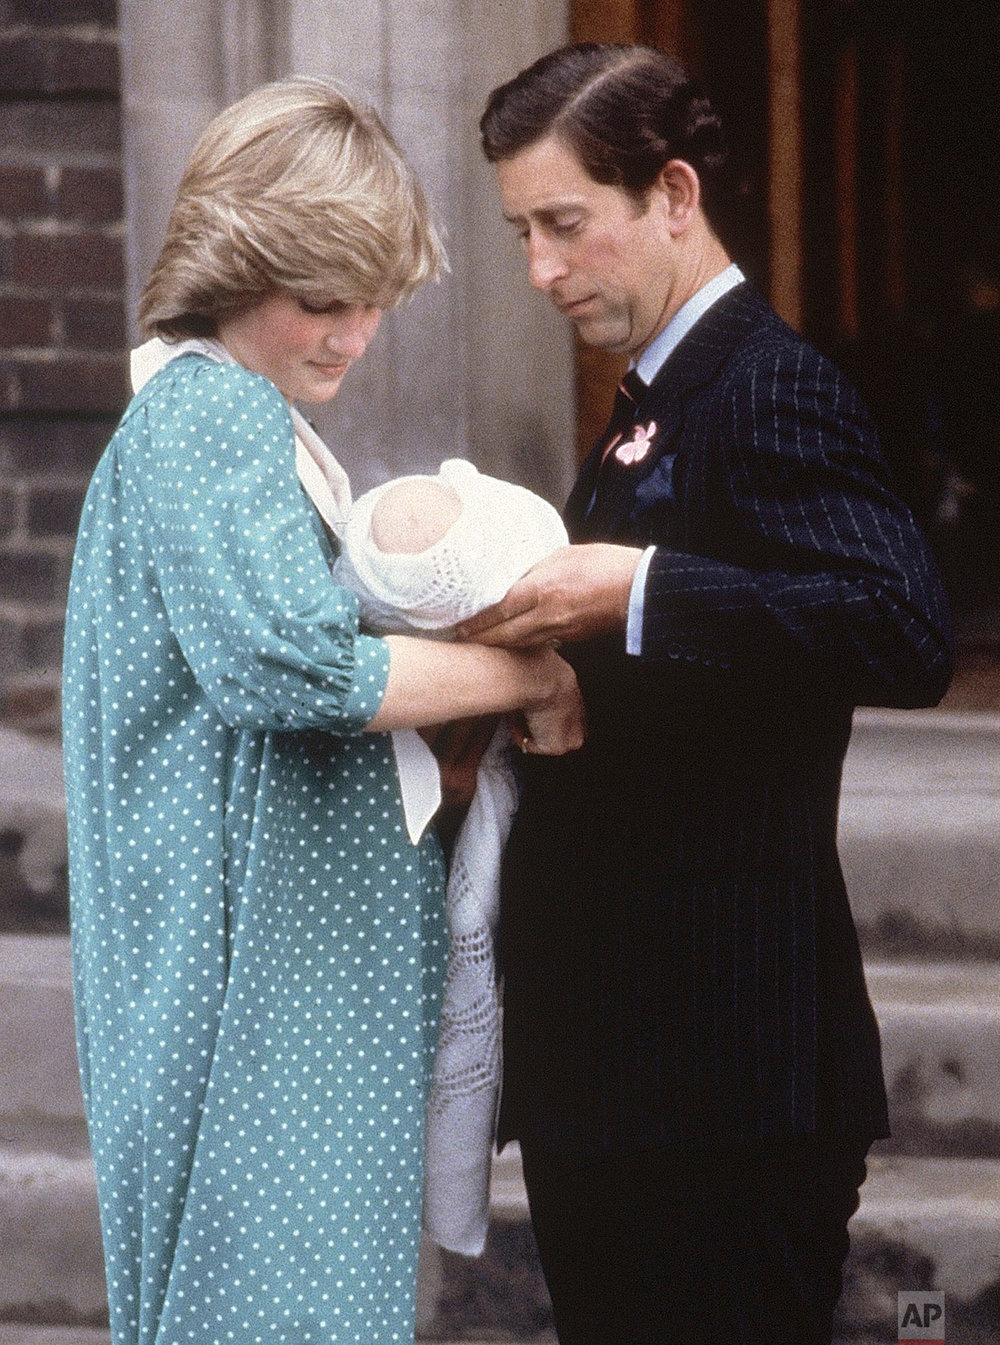 Prince Charles and Princess Diana with newborn son Prince William in 1982